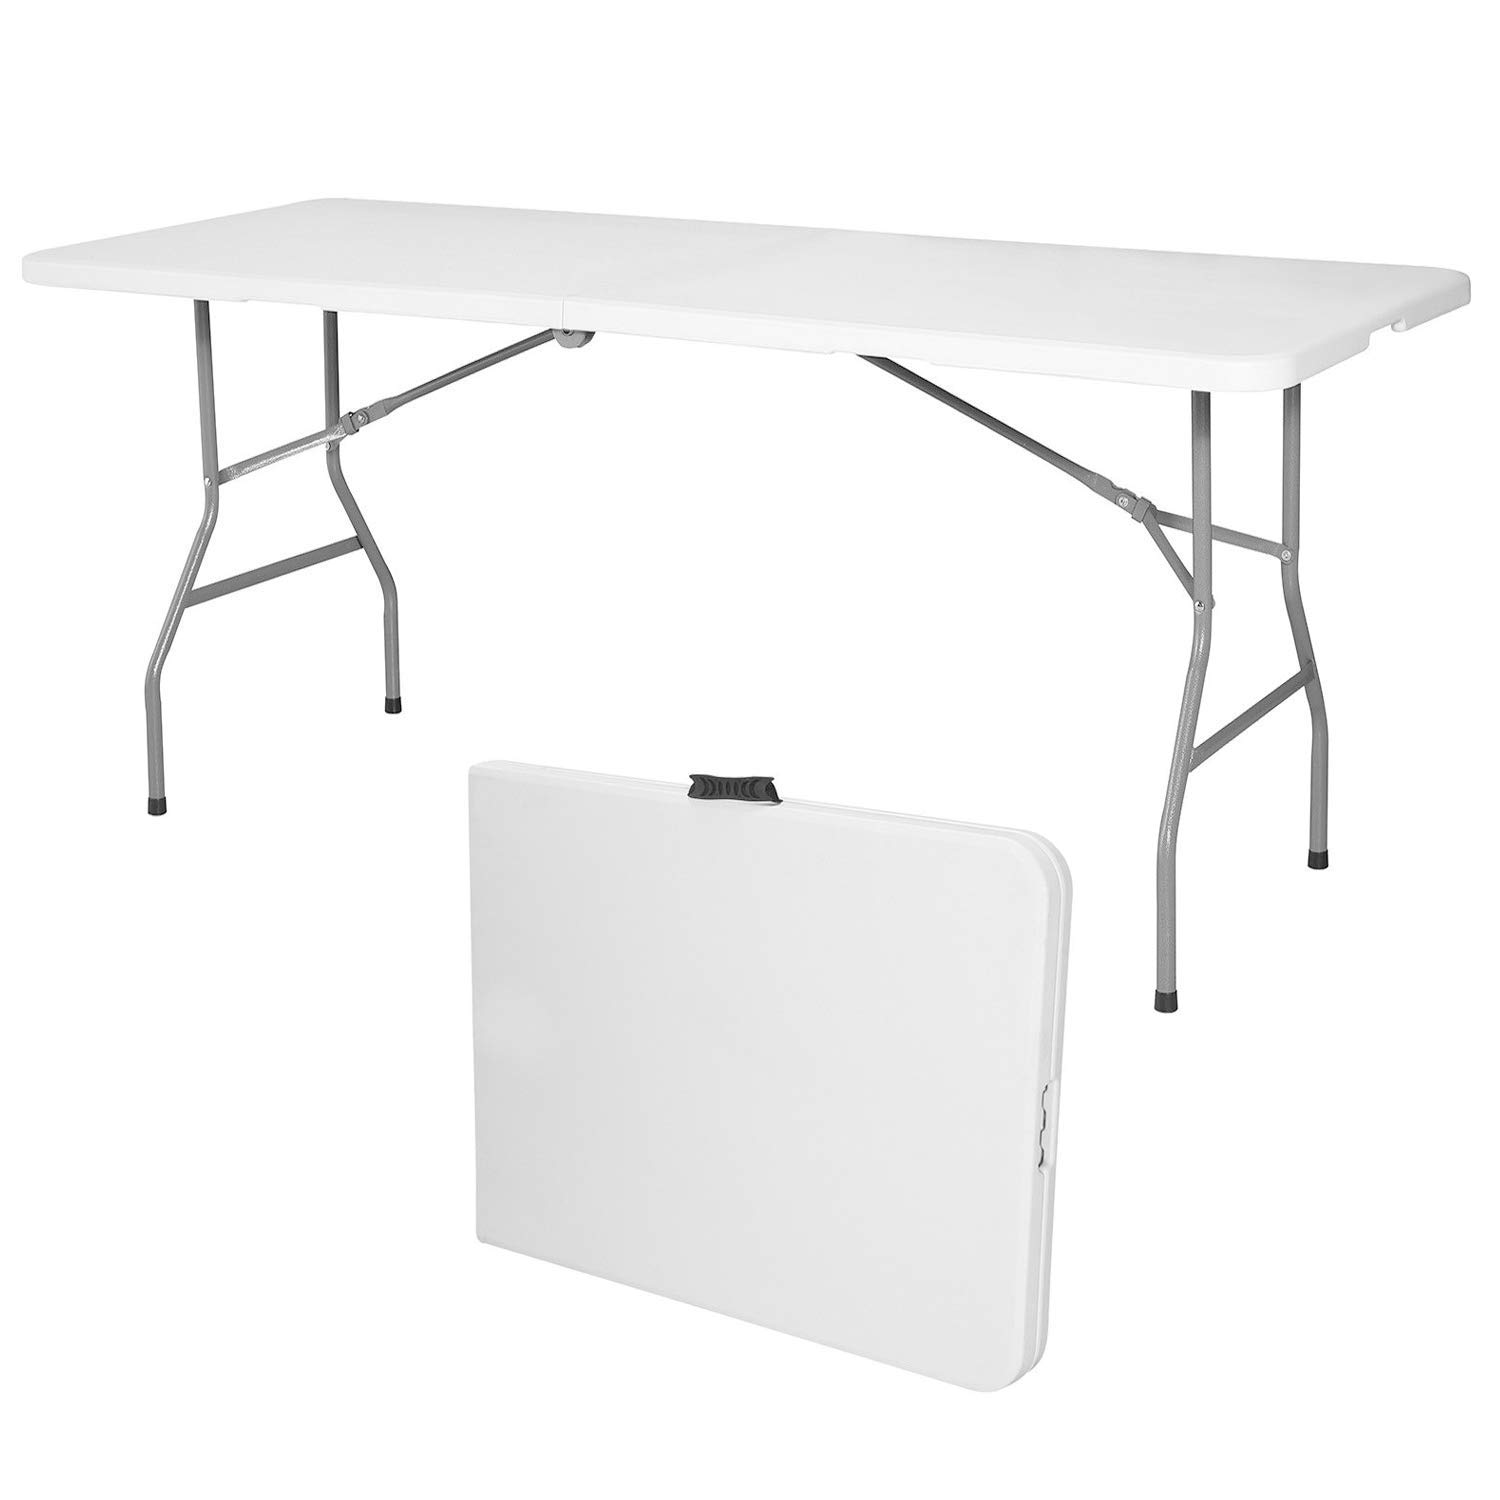 Modern-Depo 6FT Folding Table Portable Plastic Dining Table with Handle and HDPE Top Powder Coated Iron Frame for Indoor, Outdoor, Picnic, Party Camping, White